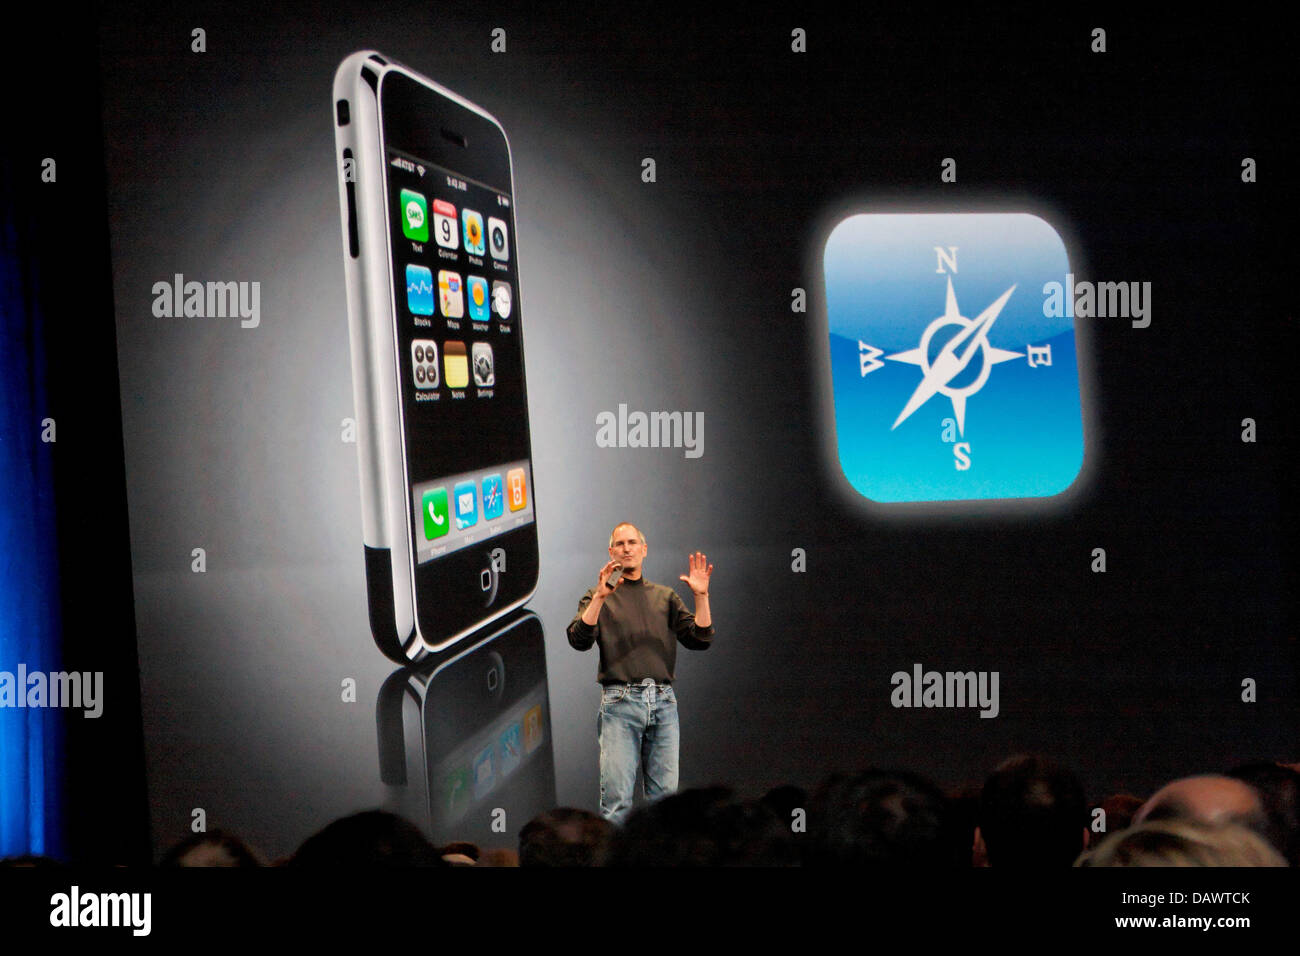 Apple CEO Steve Jobs presents Apple's new 'iPhone' at the Worldwide Developers Conference (WWDC) in - Stock Image